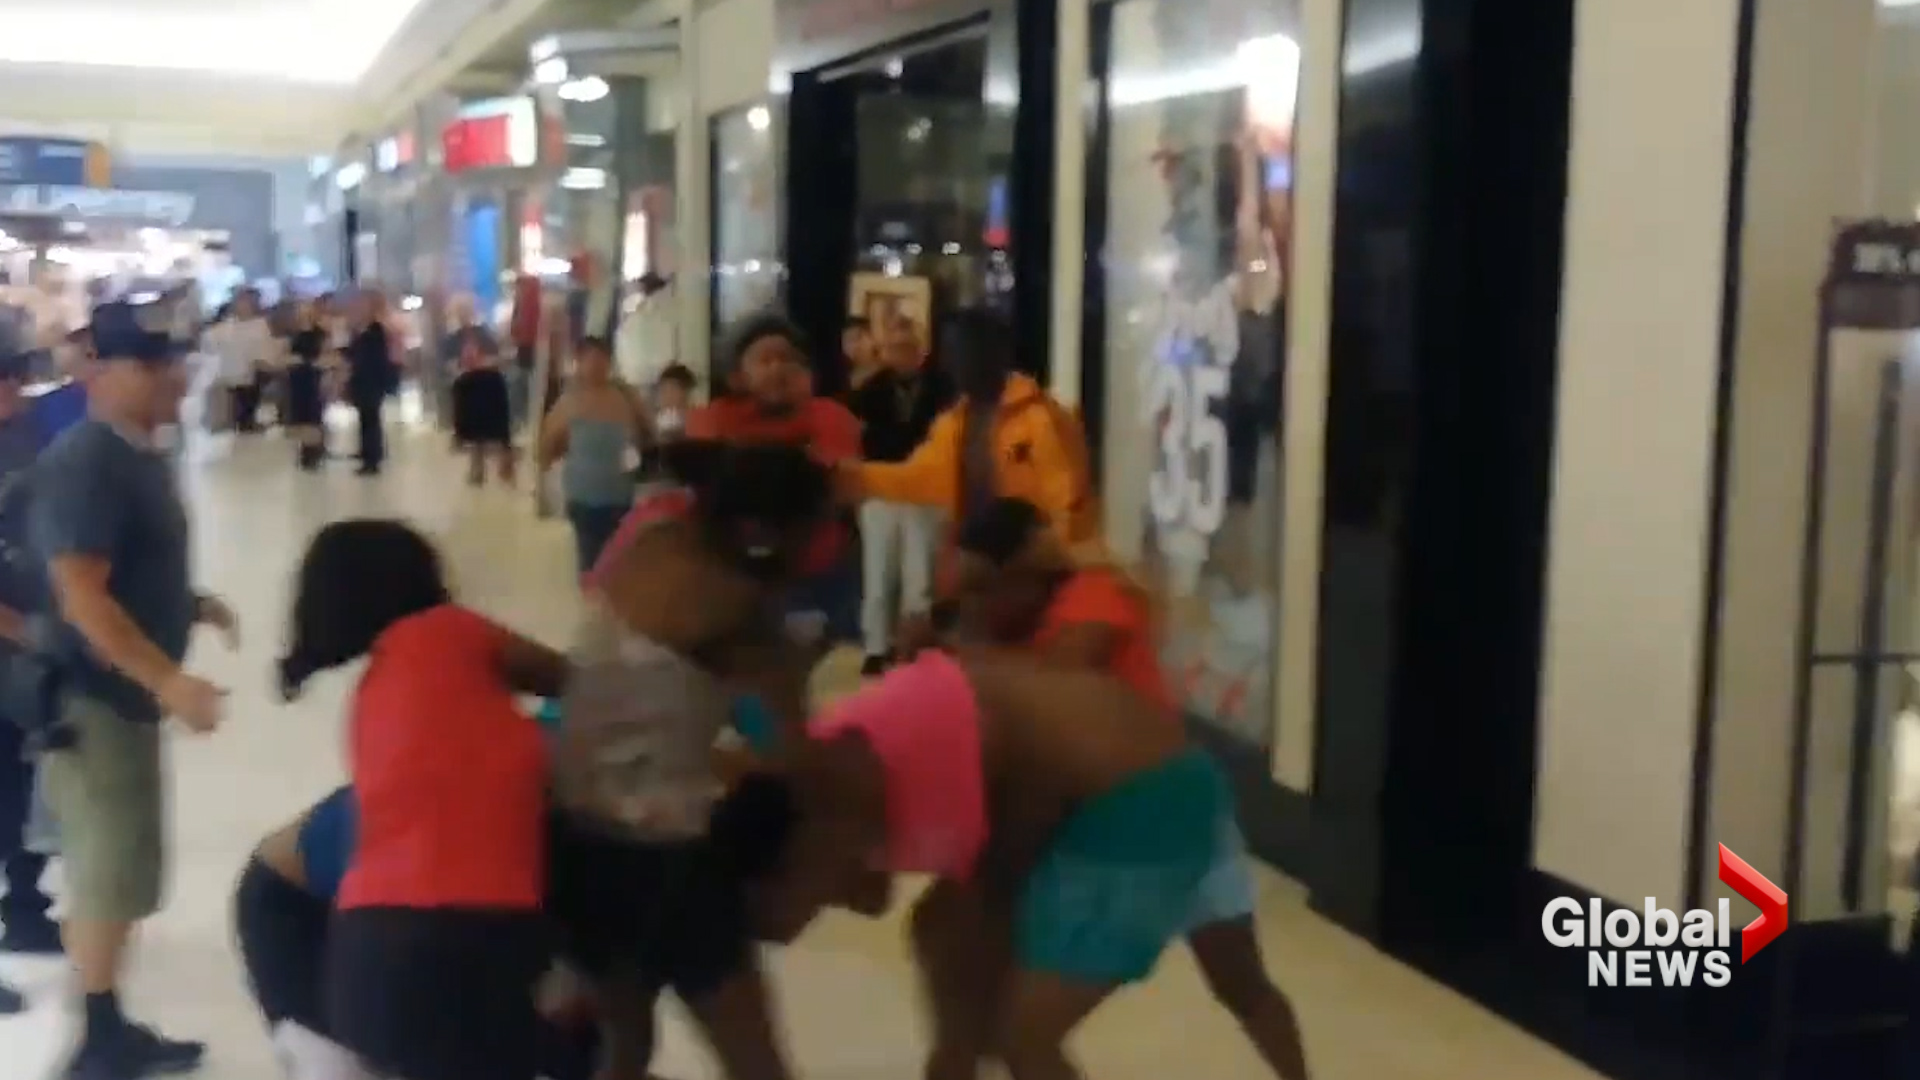 Woman pushing child in stroller joins brawl at Florida mall